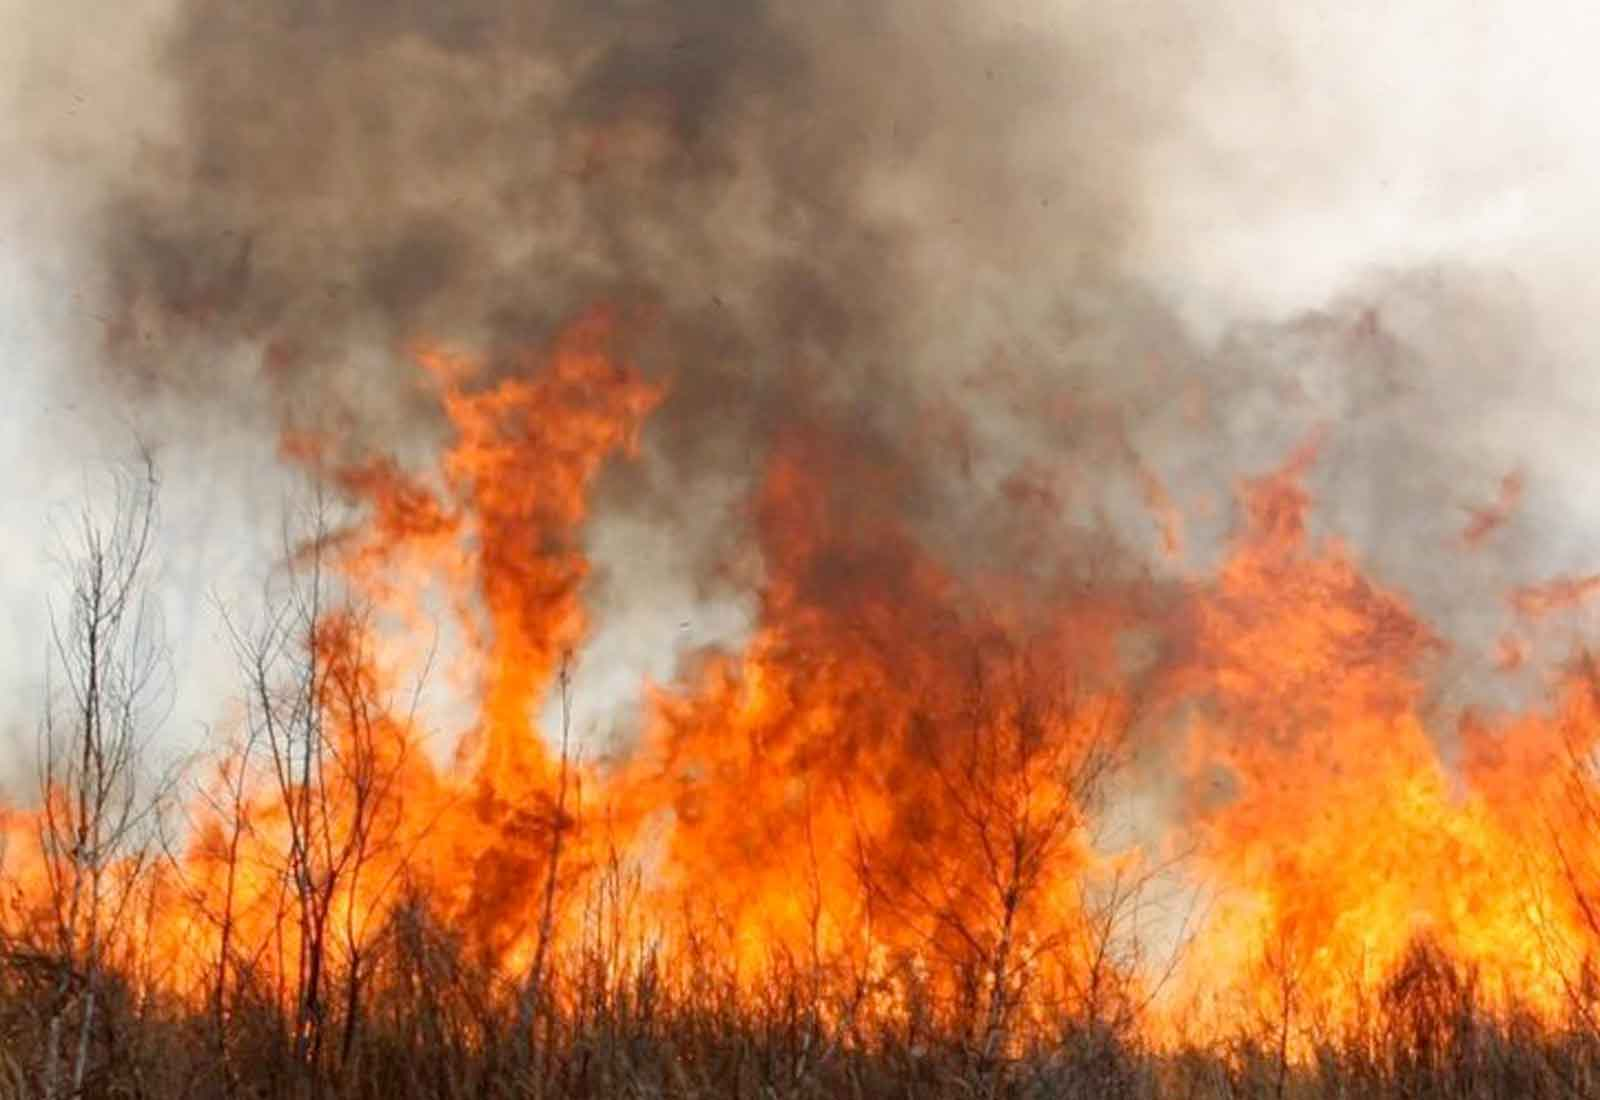 Media Release: Bush Fires Deadly For Lungs